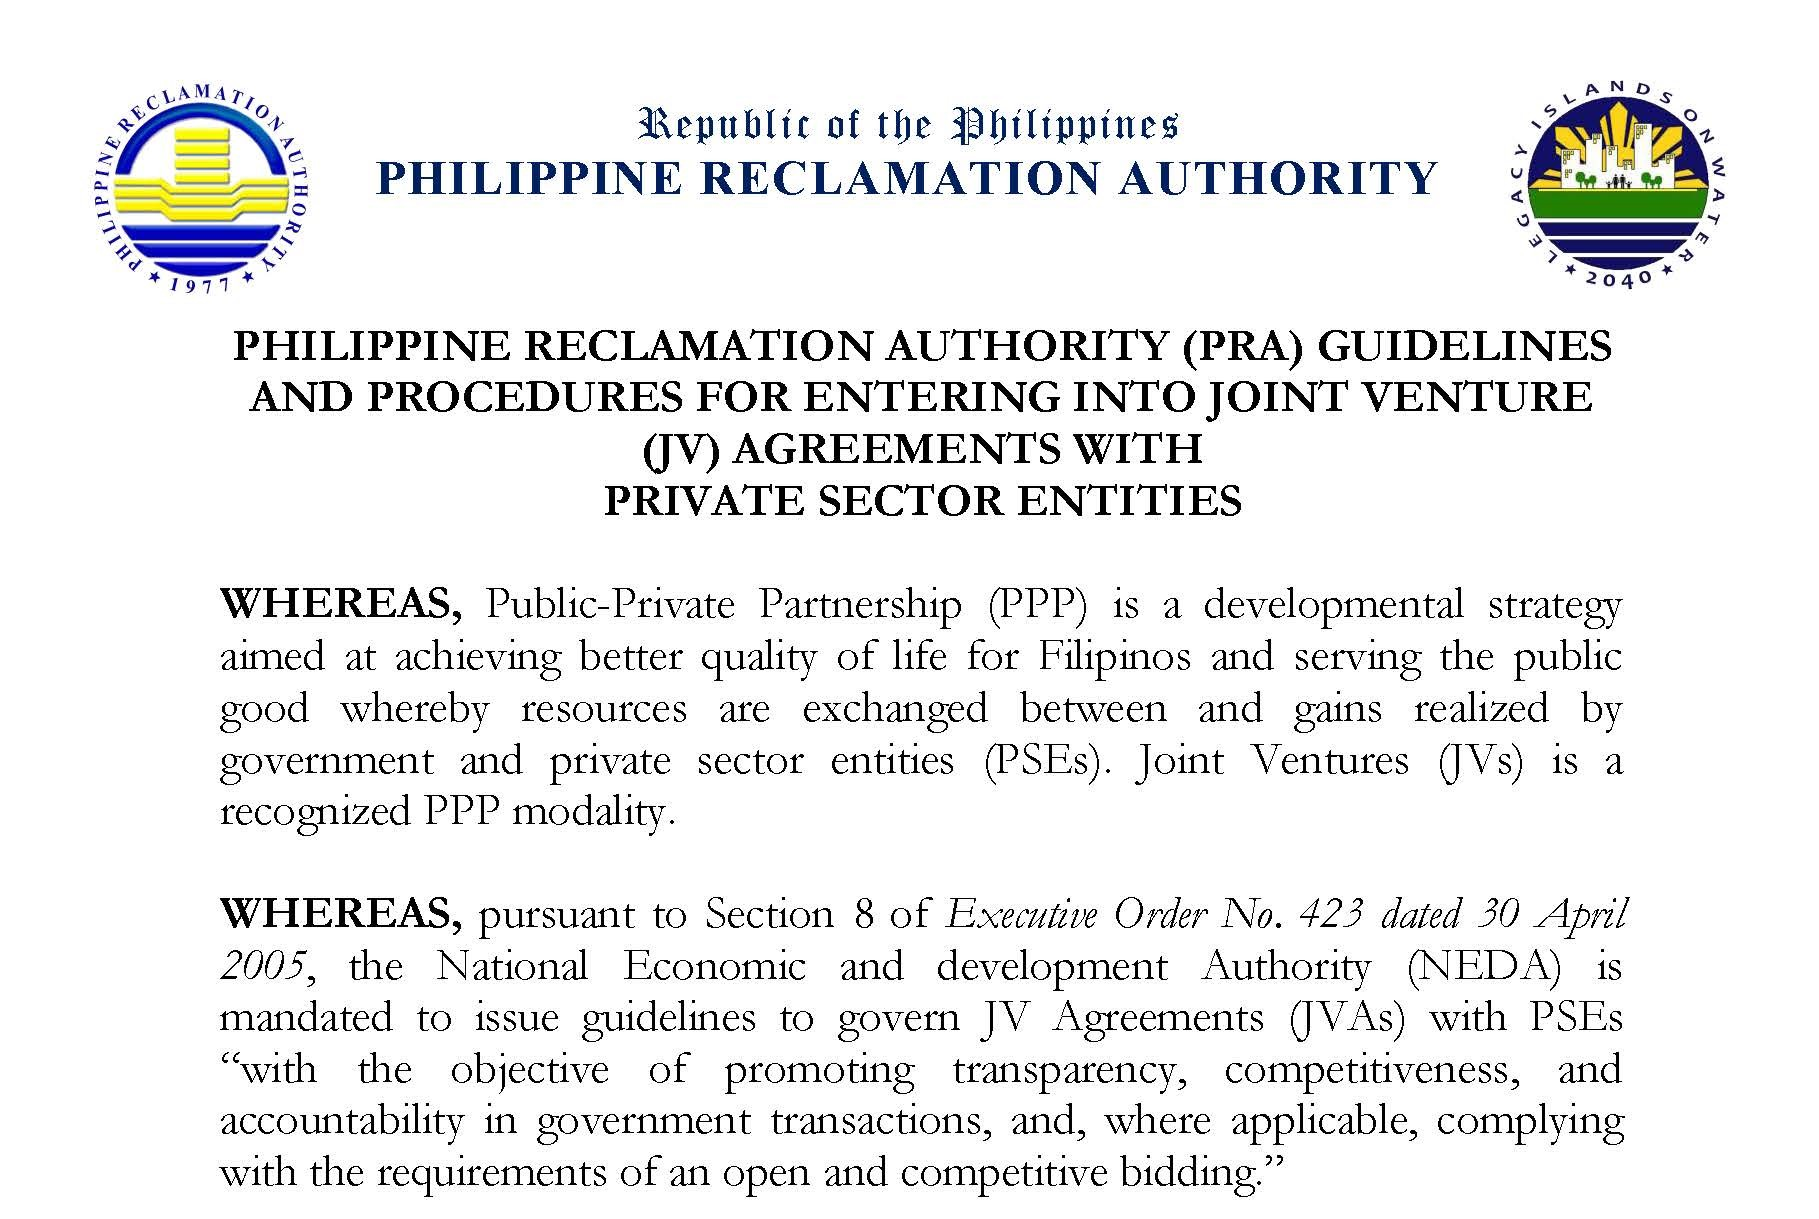 Pra Guidelines And Procedures For Entering Into Joint Venture Jv